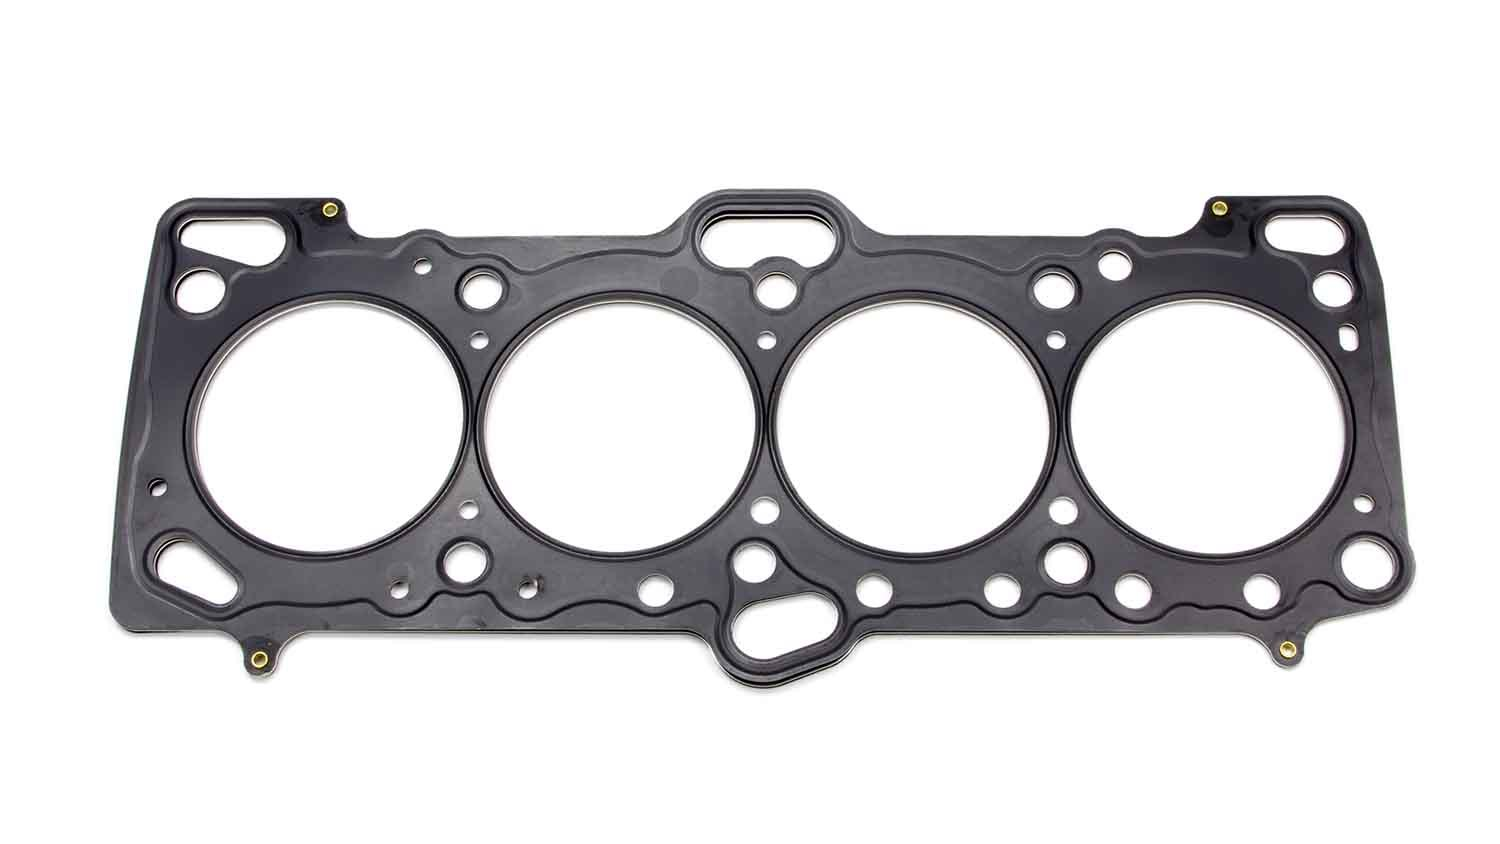 Cometic Gaskets C4233-051 Cylinder Head Gasket, 85.5 mm Bore, 0.051 in Compression Thickness, Multi-Layered Steel, Mitsubishi 4G63, Each